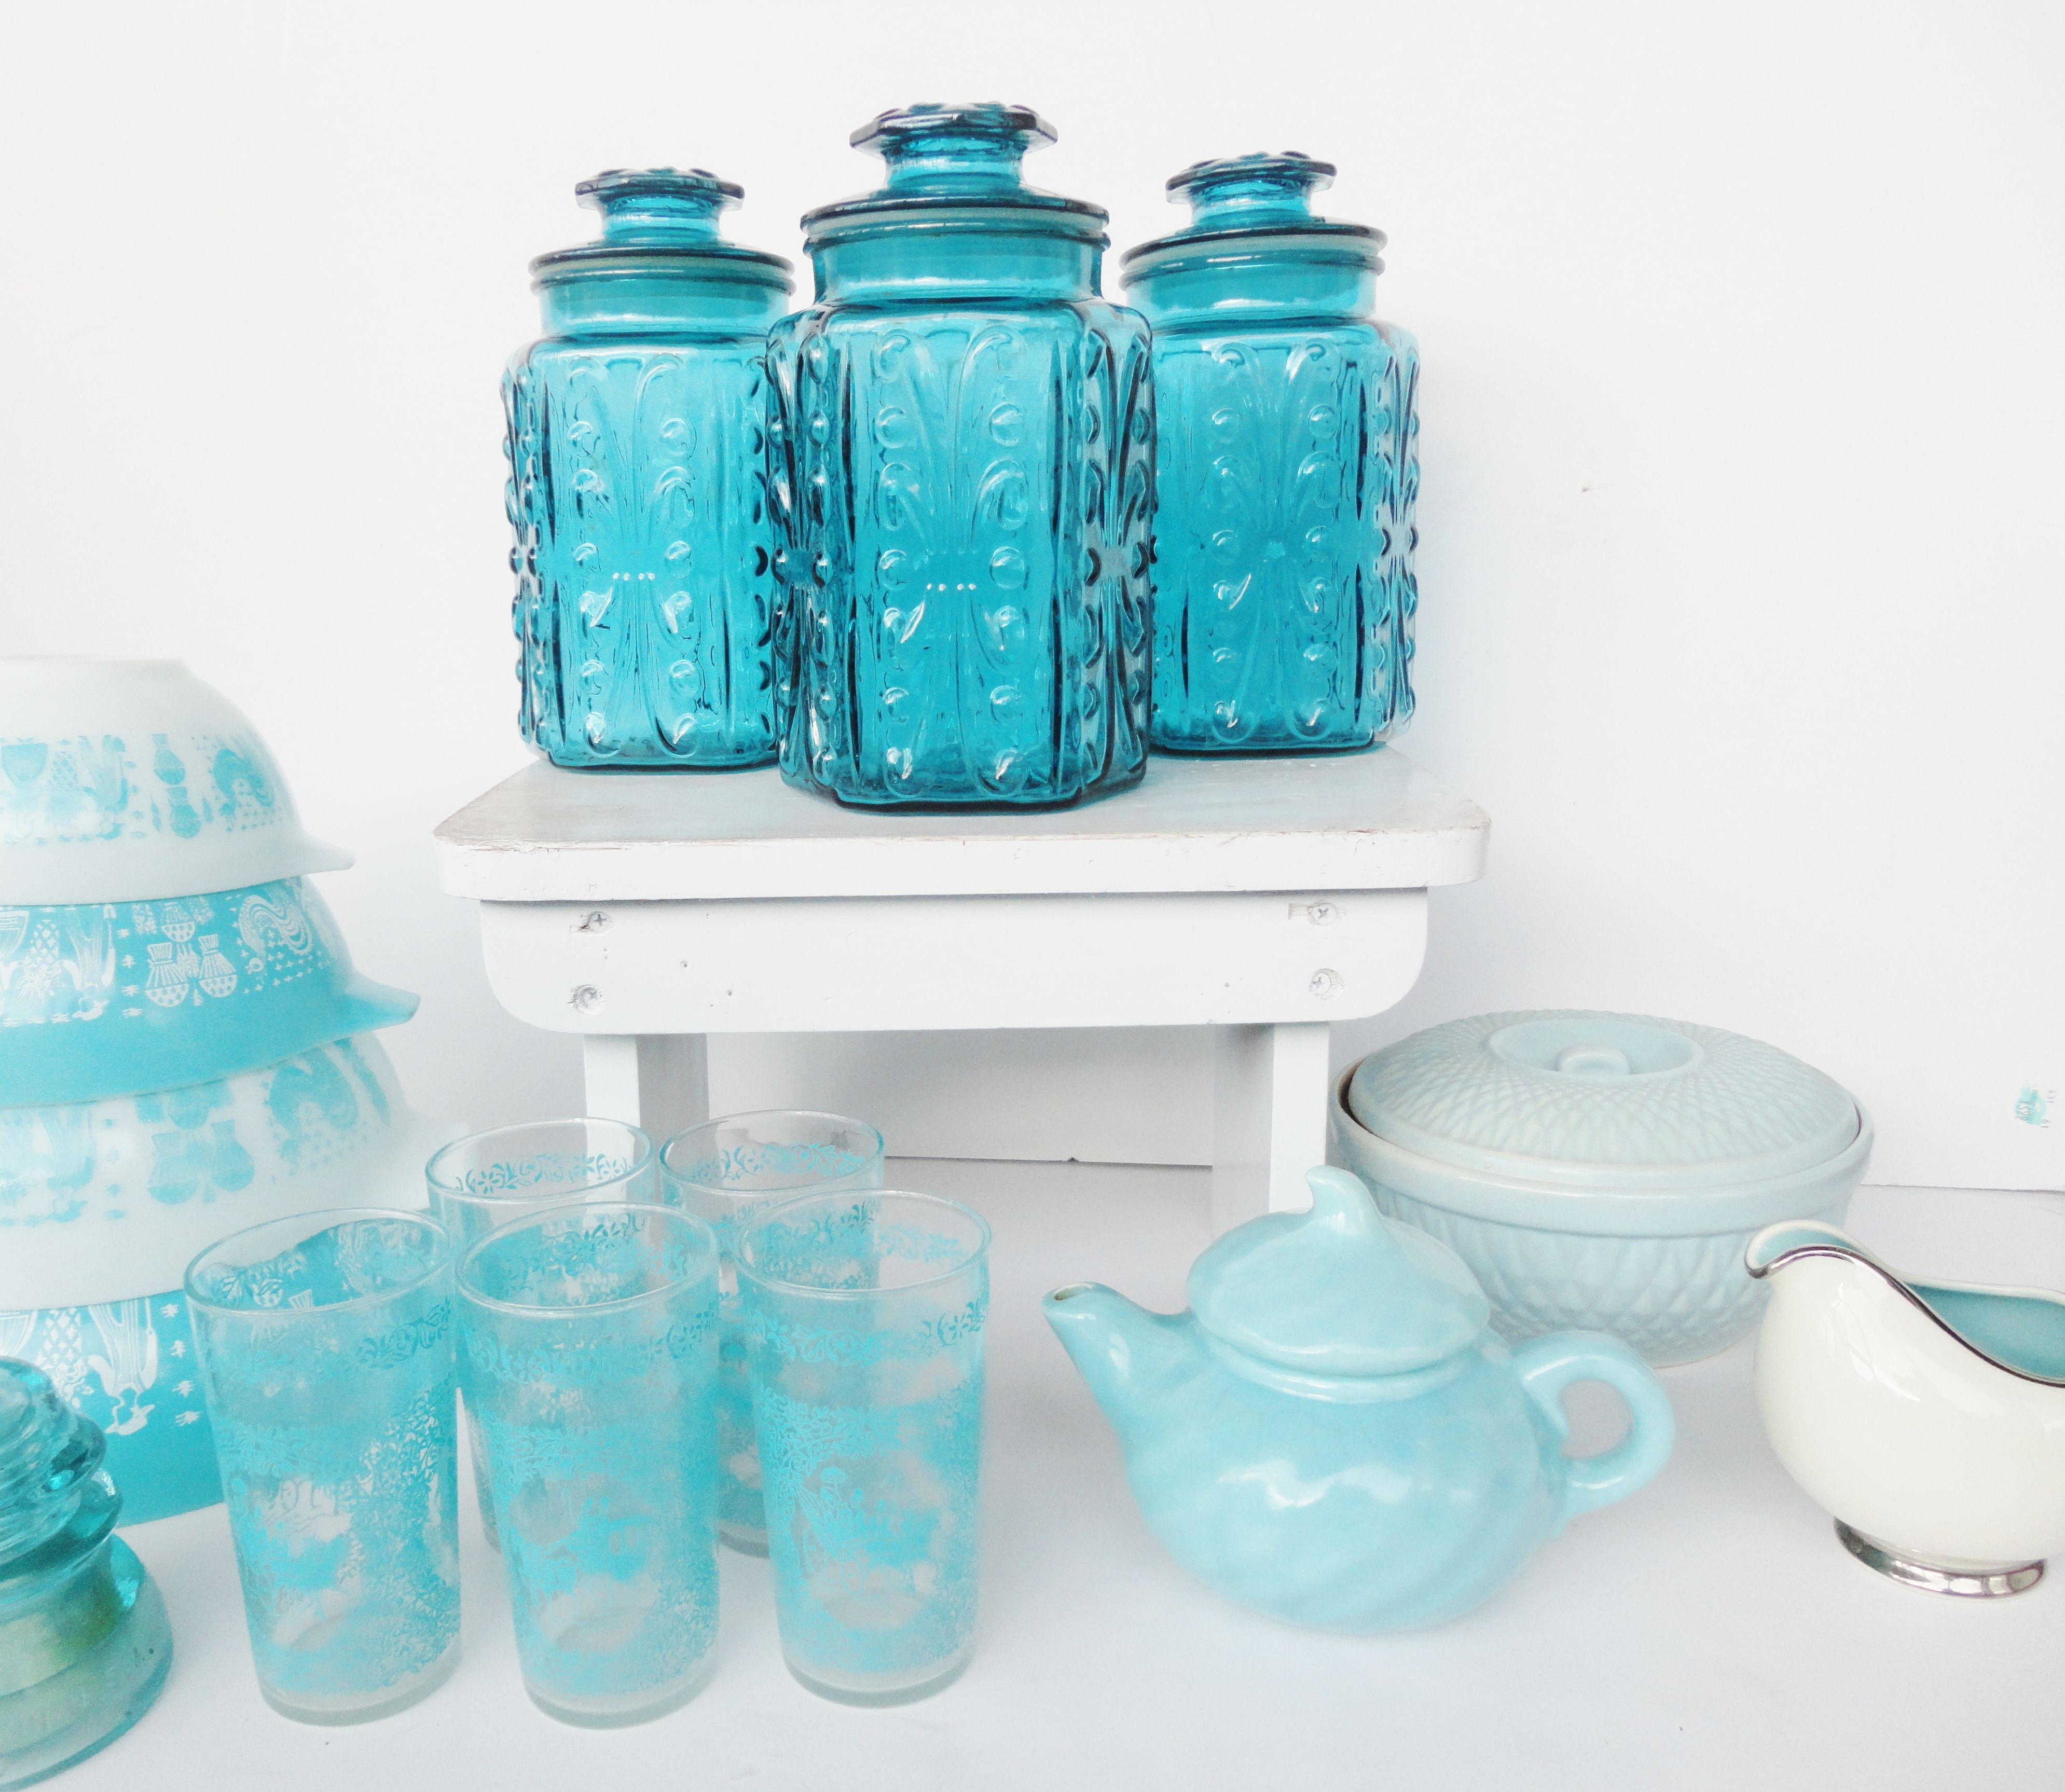 pictures of turquoise items   Vintage Turquoise Kitchen 2   Simply ...